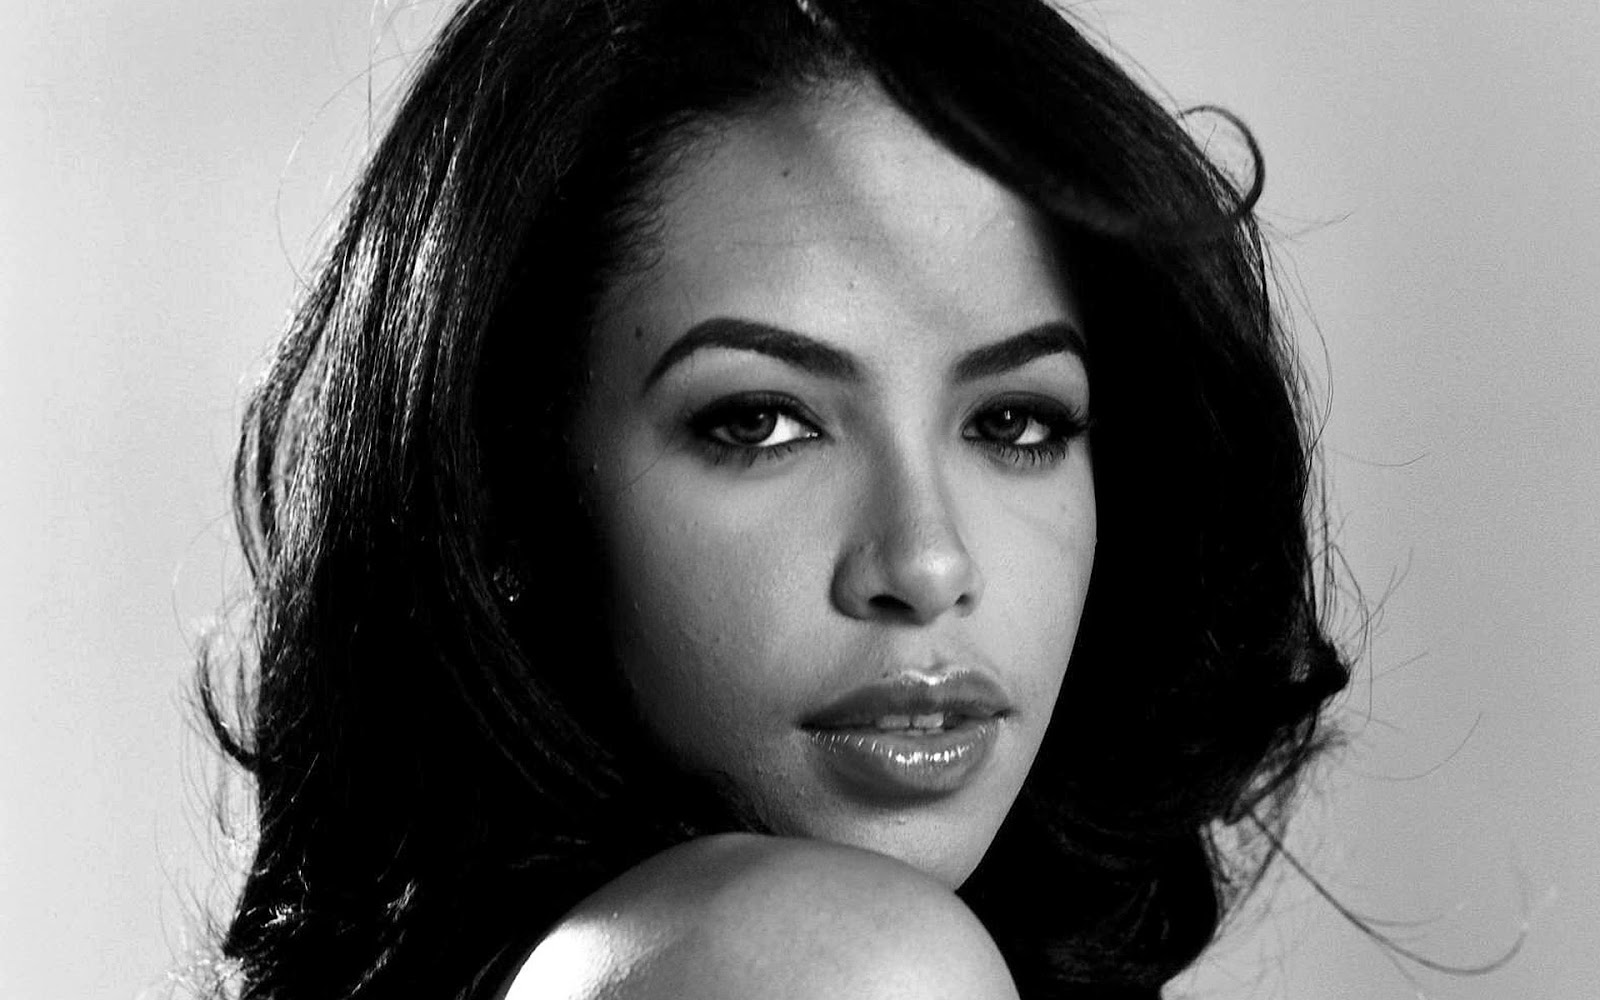 Aaliyah Rock The Boat Shmallen Remix New Music Conversations About Her